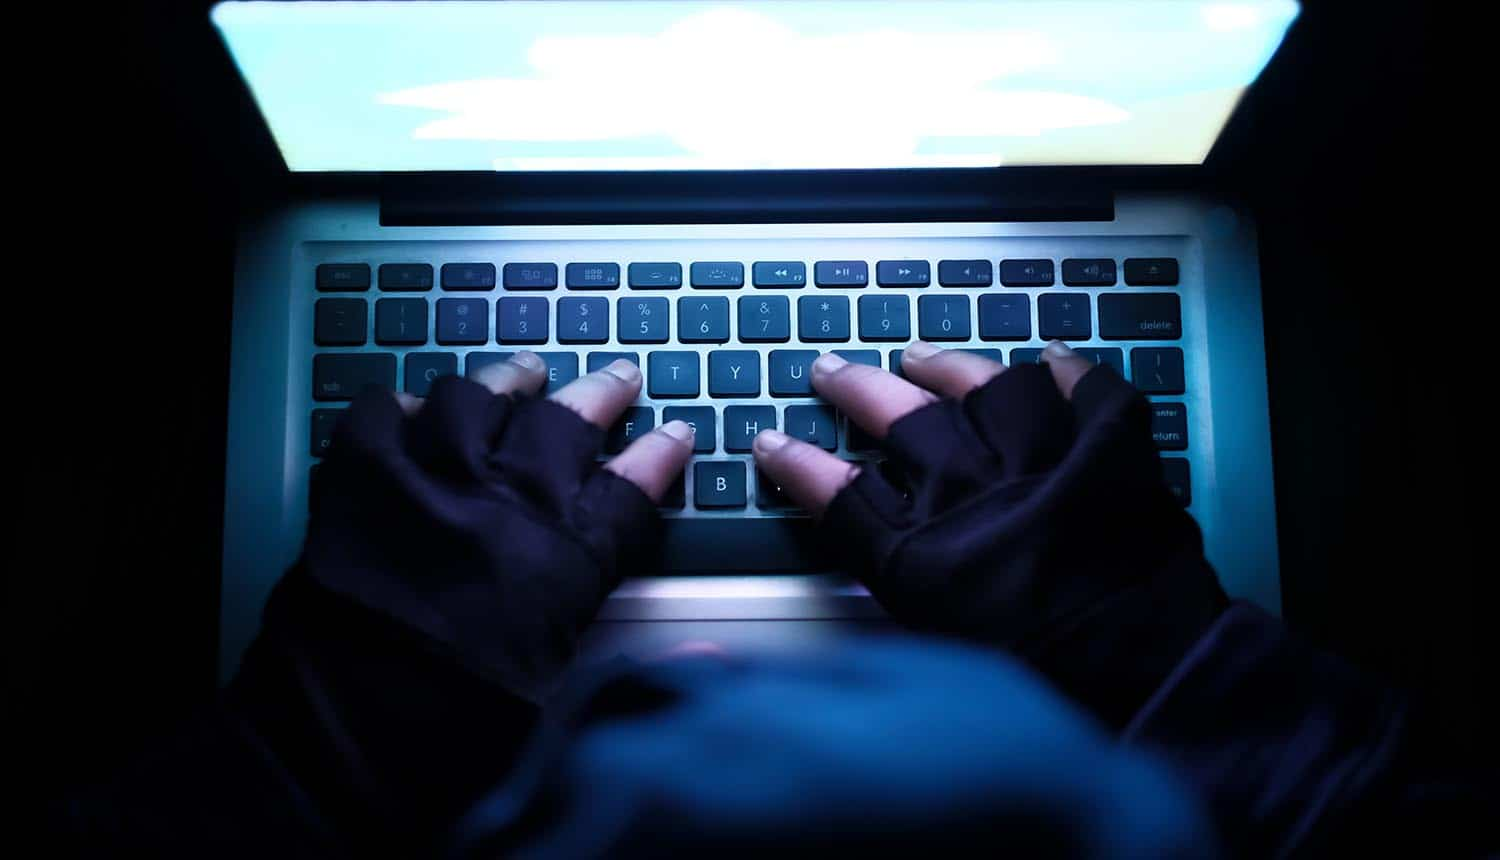 Hacker using laptop showing China's public accusation on CIA of 11 years of cyber espionage